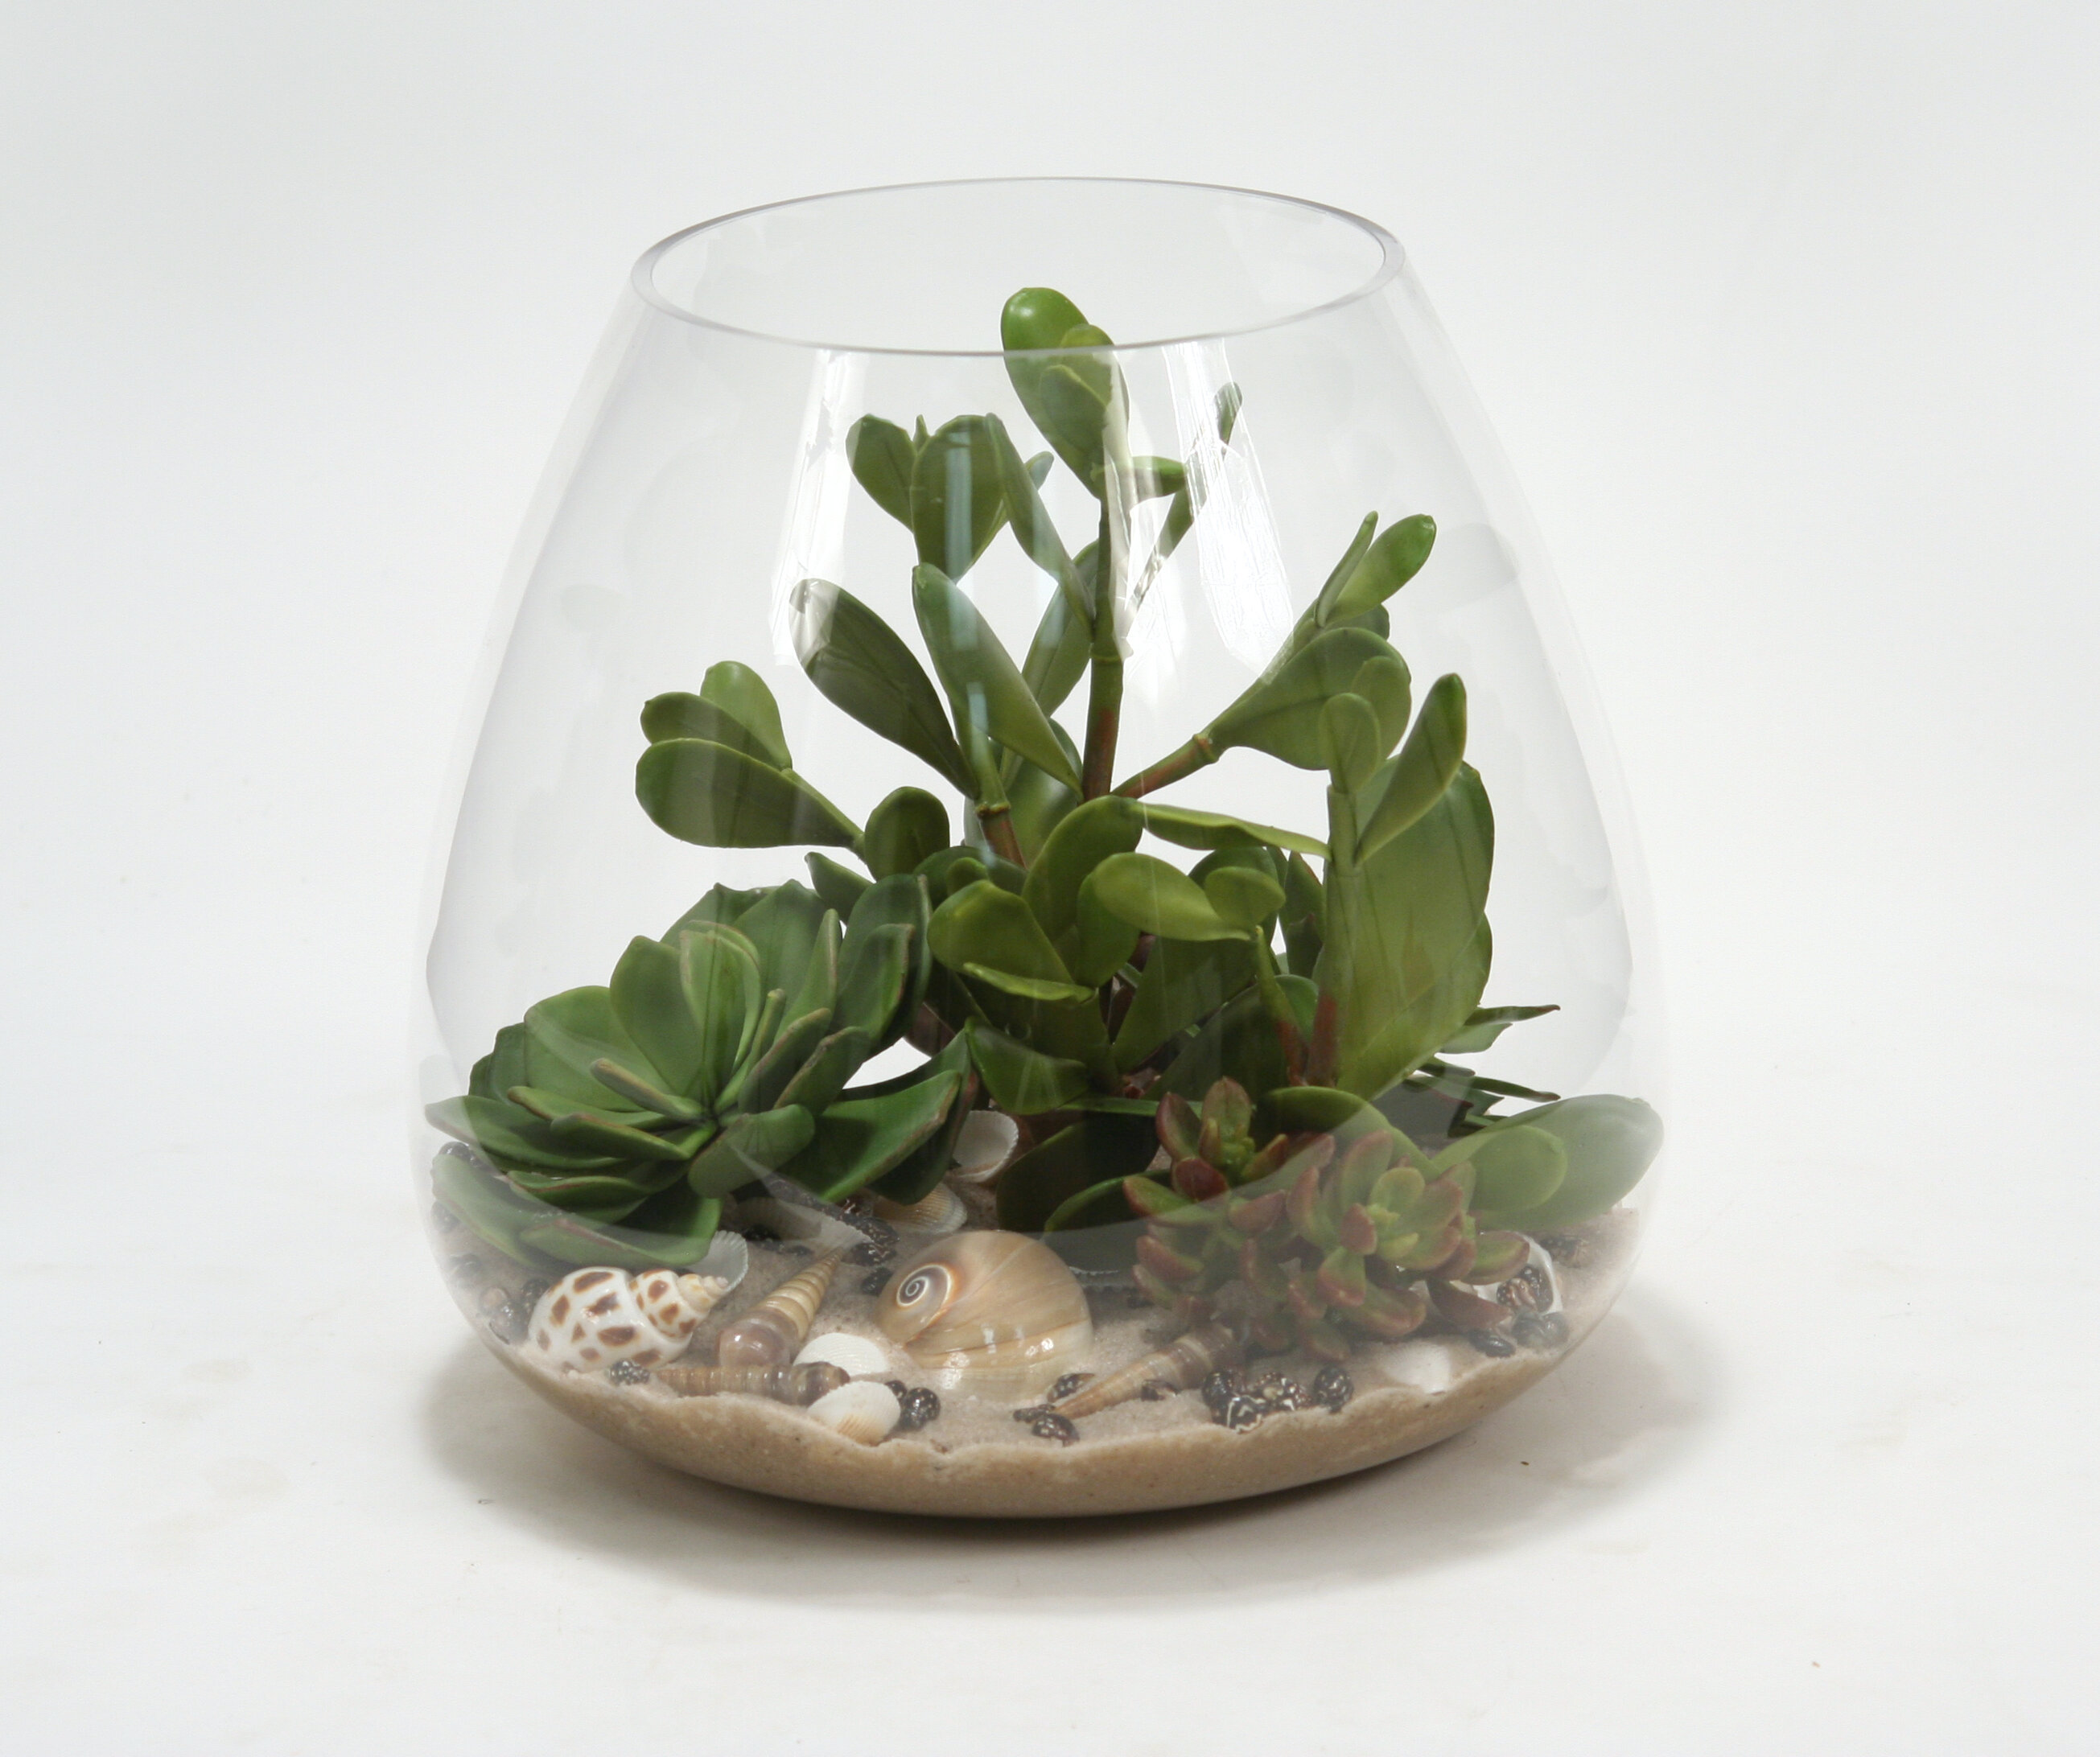 Ivy Bronx Succulents Sand And Shells Desk Top Plant In Terrarium